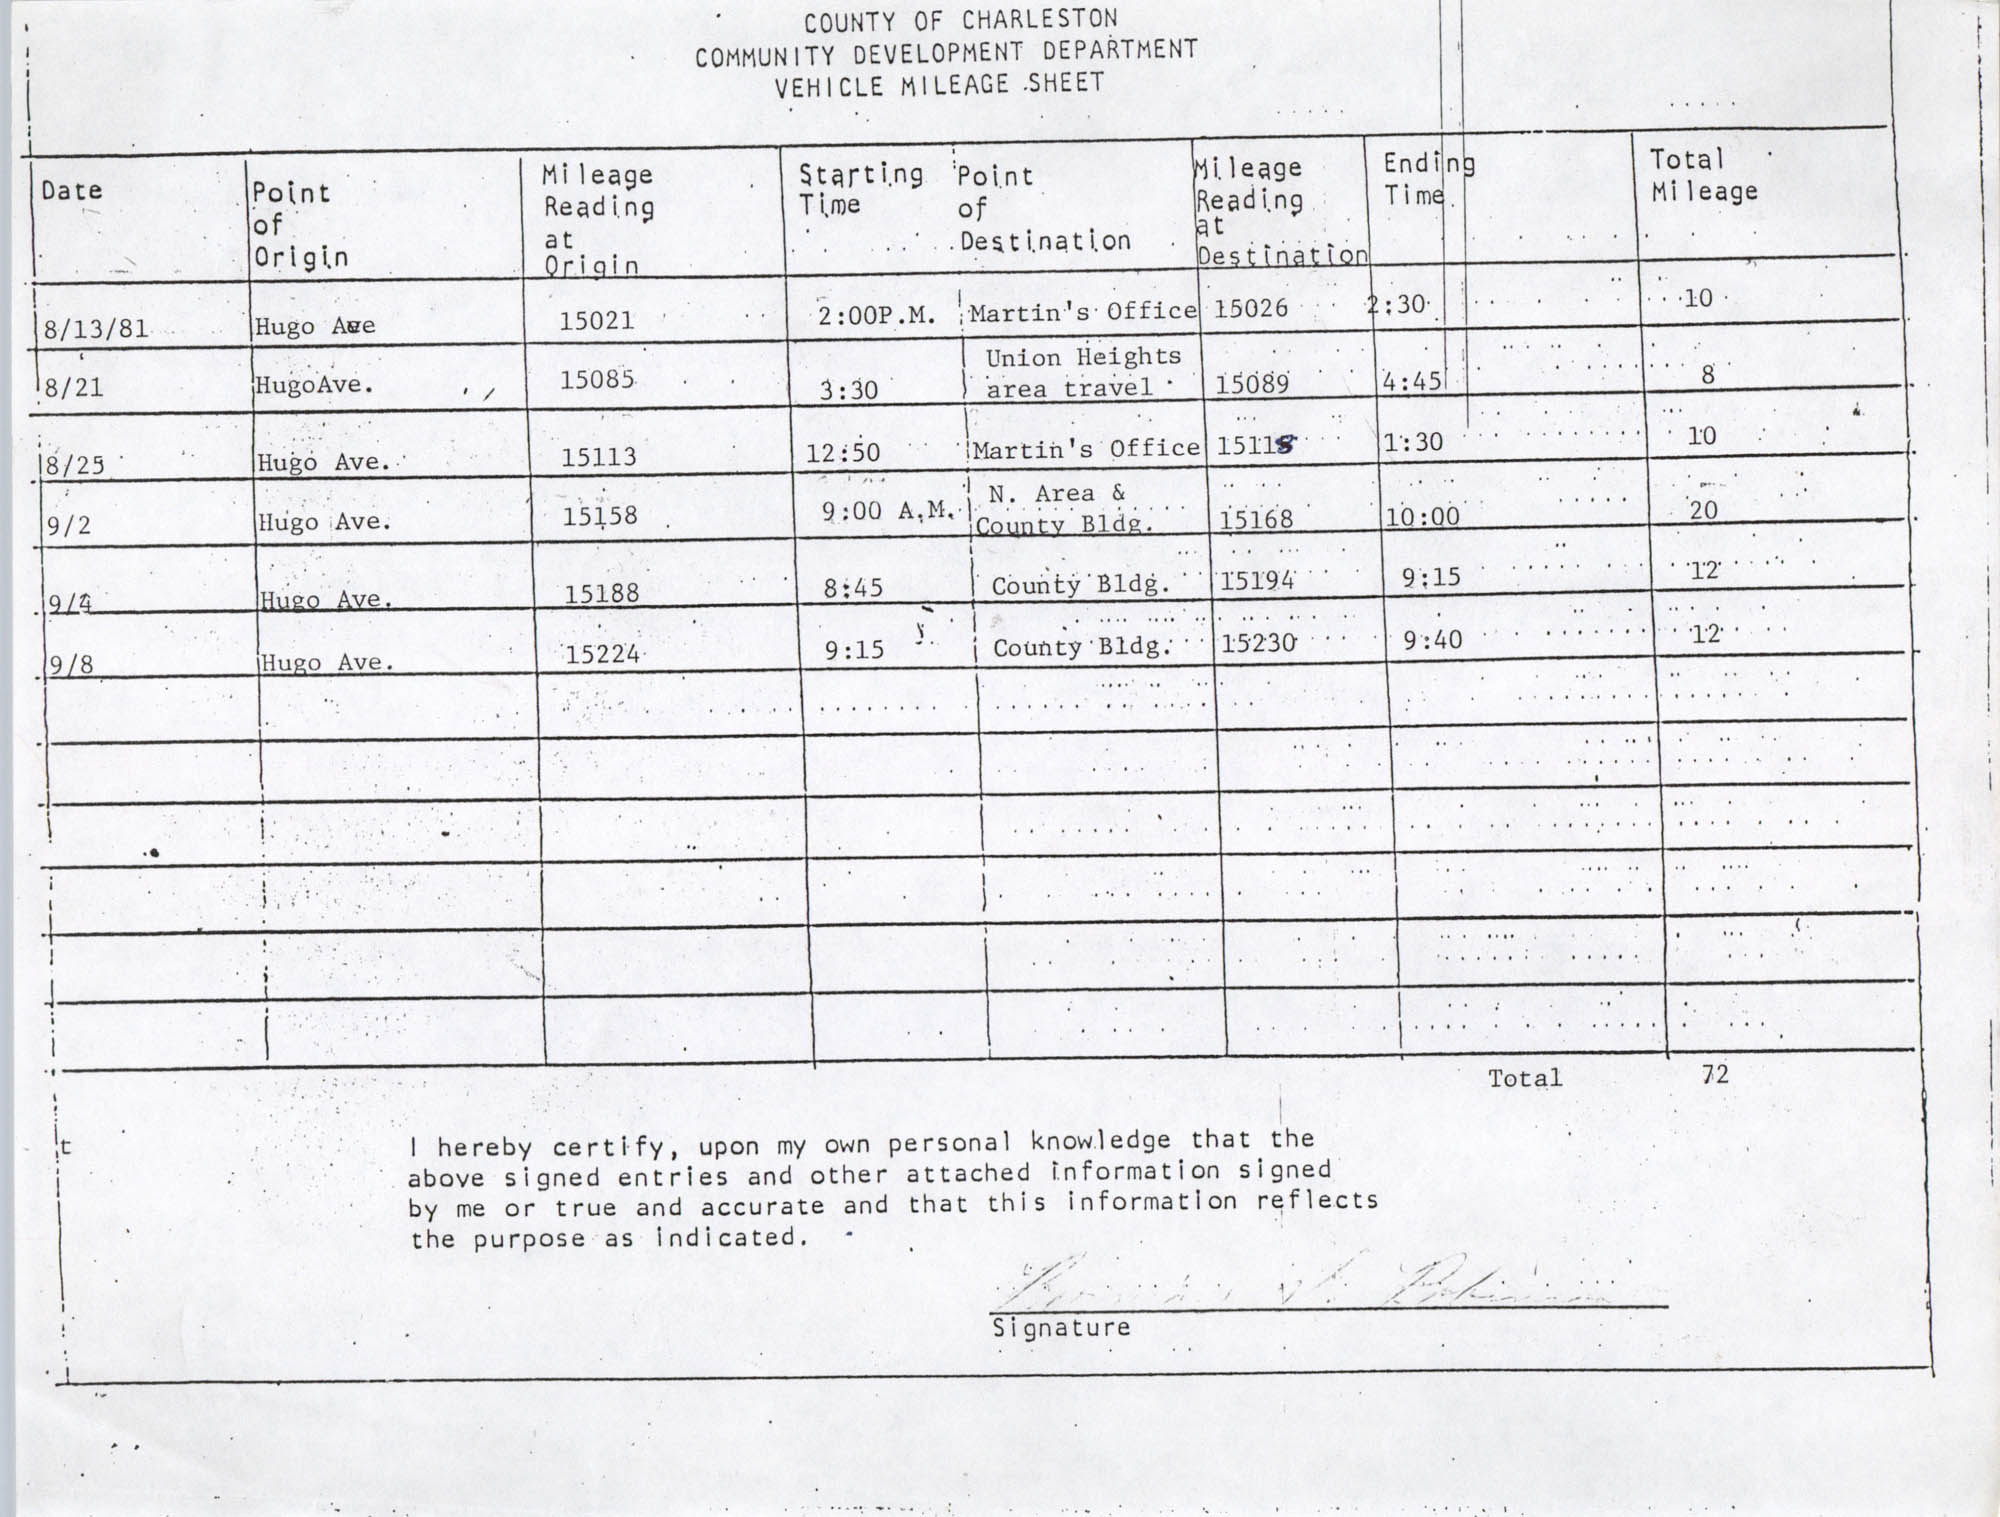 Community Development Department Vehicle Mileage Sheet, Page 13